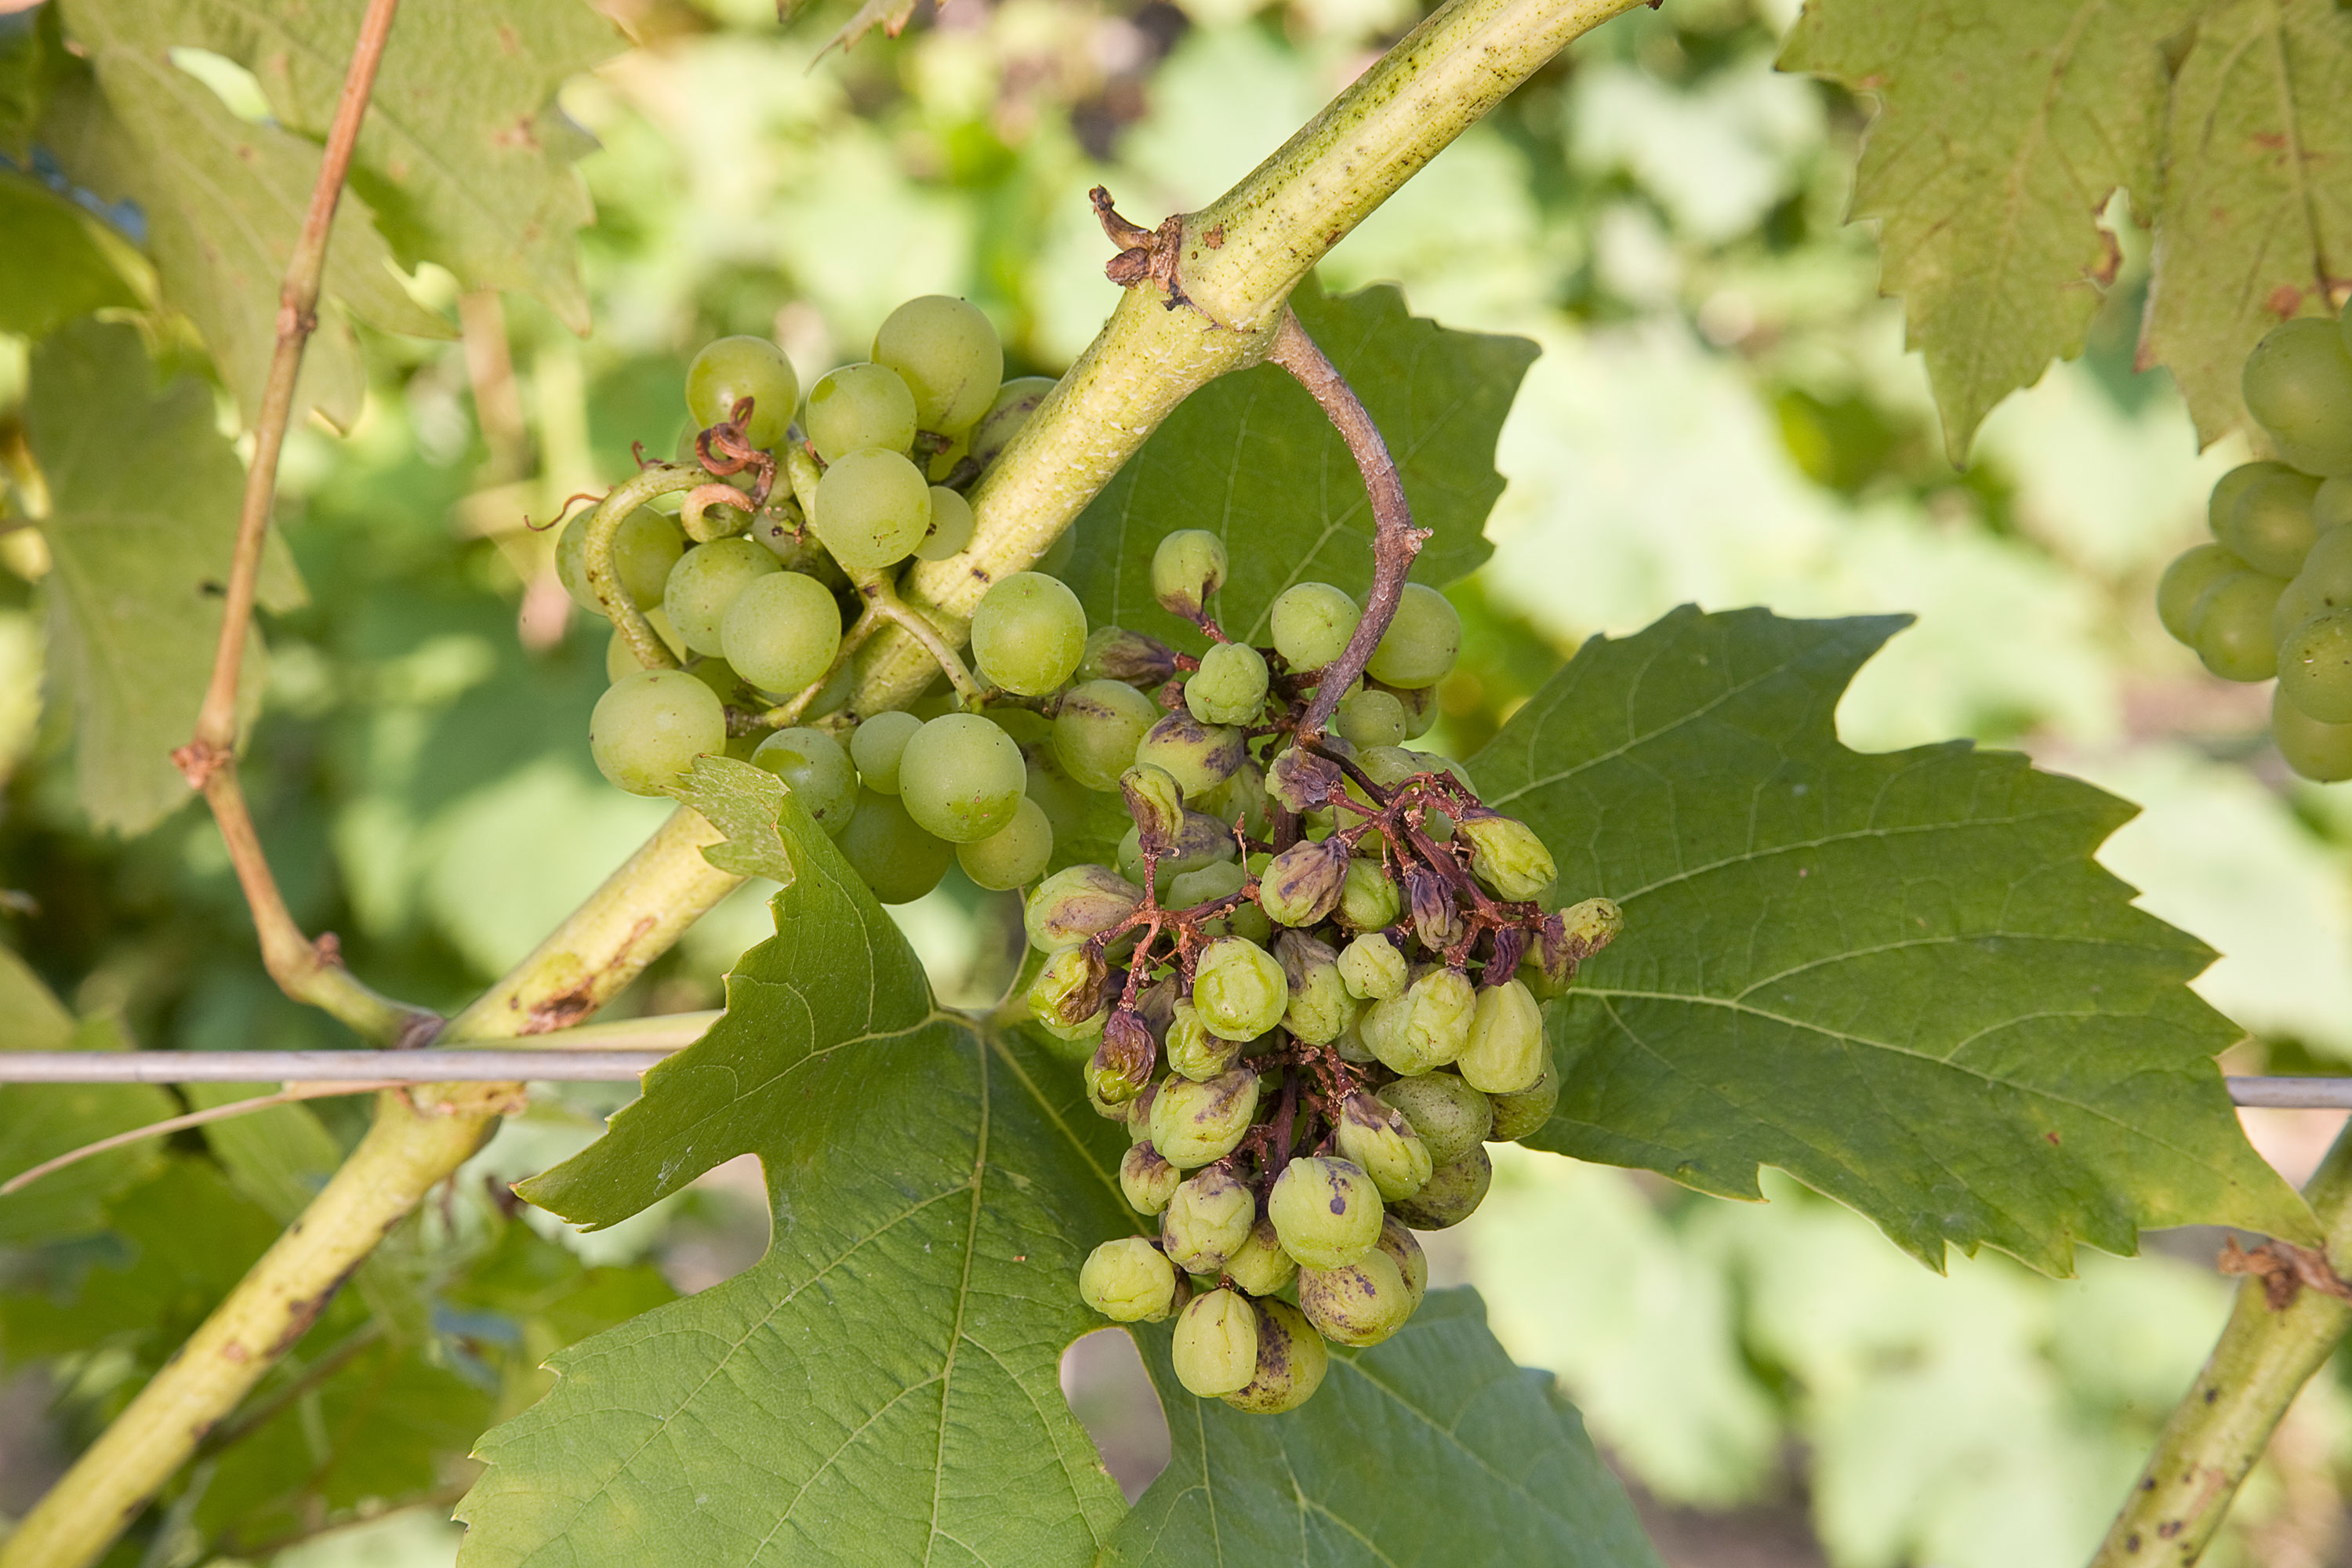 grape-shanking_GettyImages-126016718.jpg